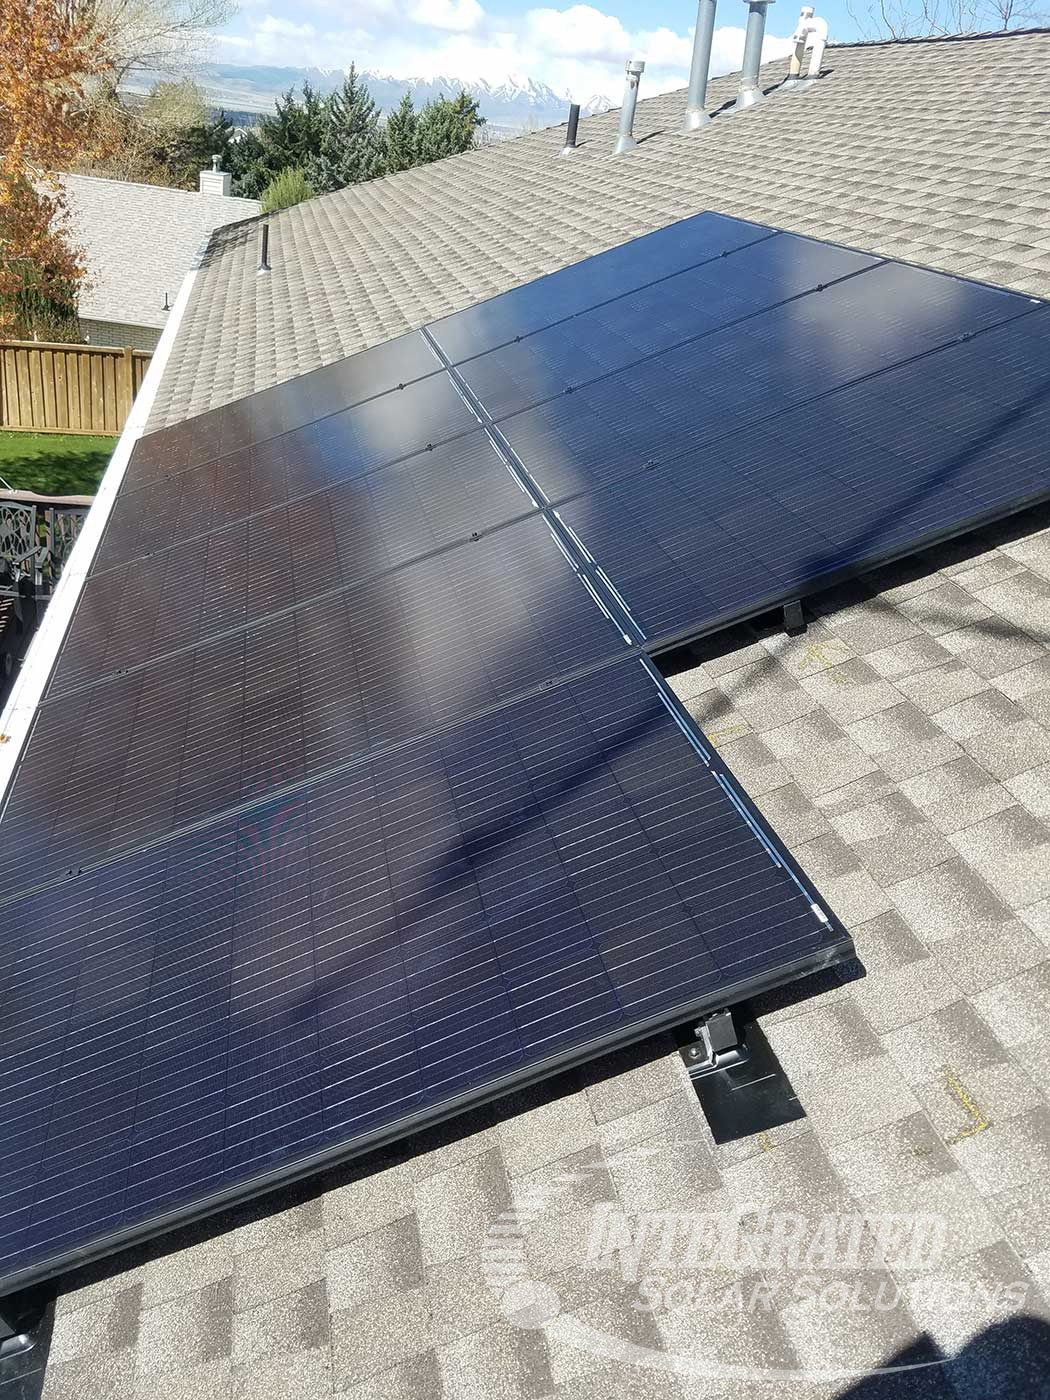 8 11 Kw Solar System Installation Integrated Solar Solutions Provides The Best Installation Solutions For Any Roof T Solar Panels For Home Solar Panels Solar Solutions